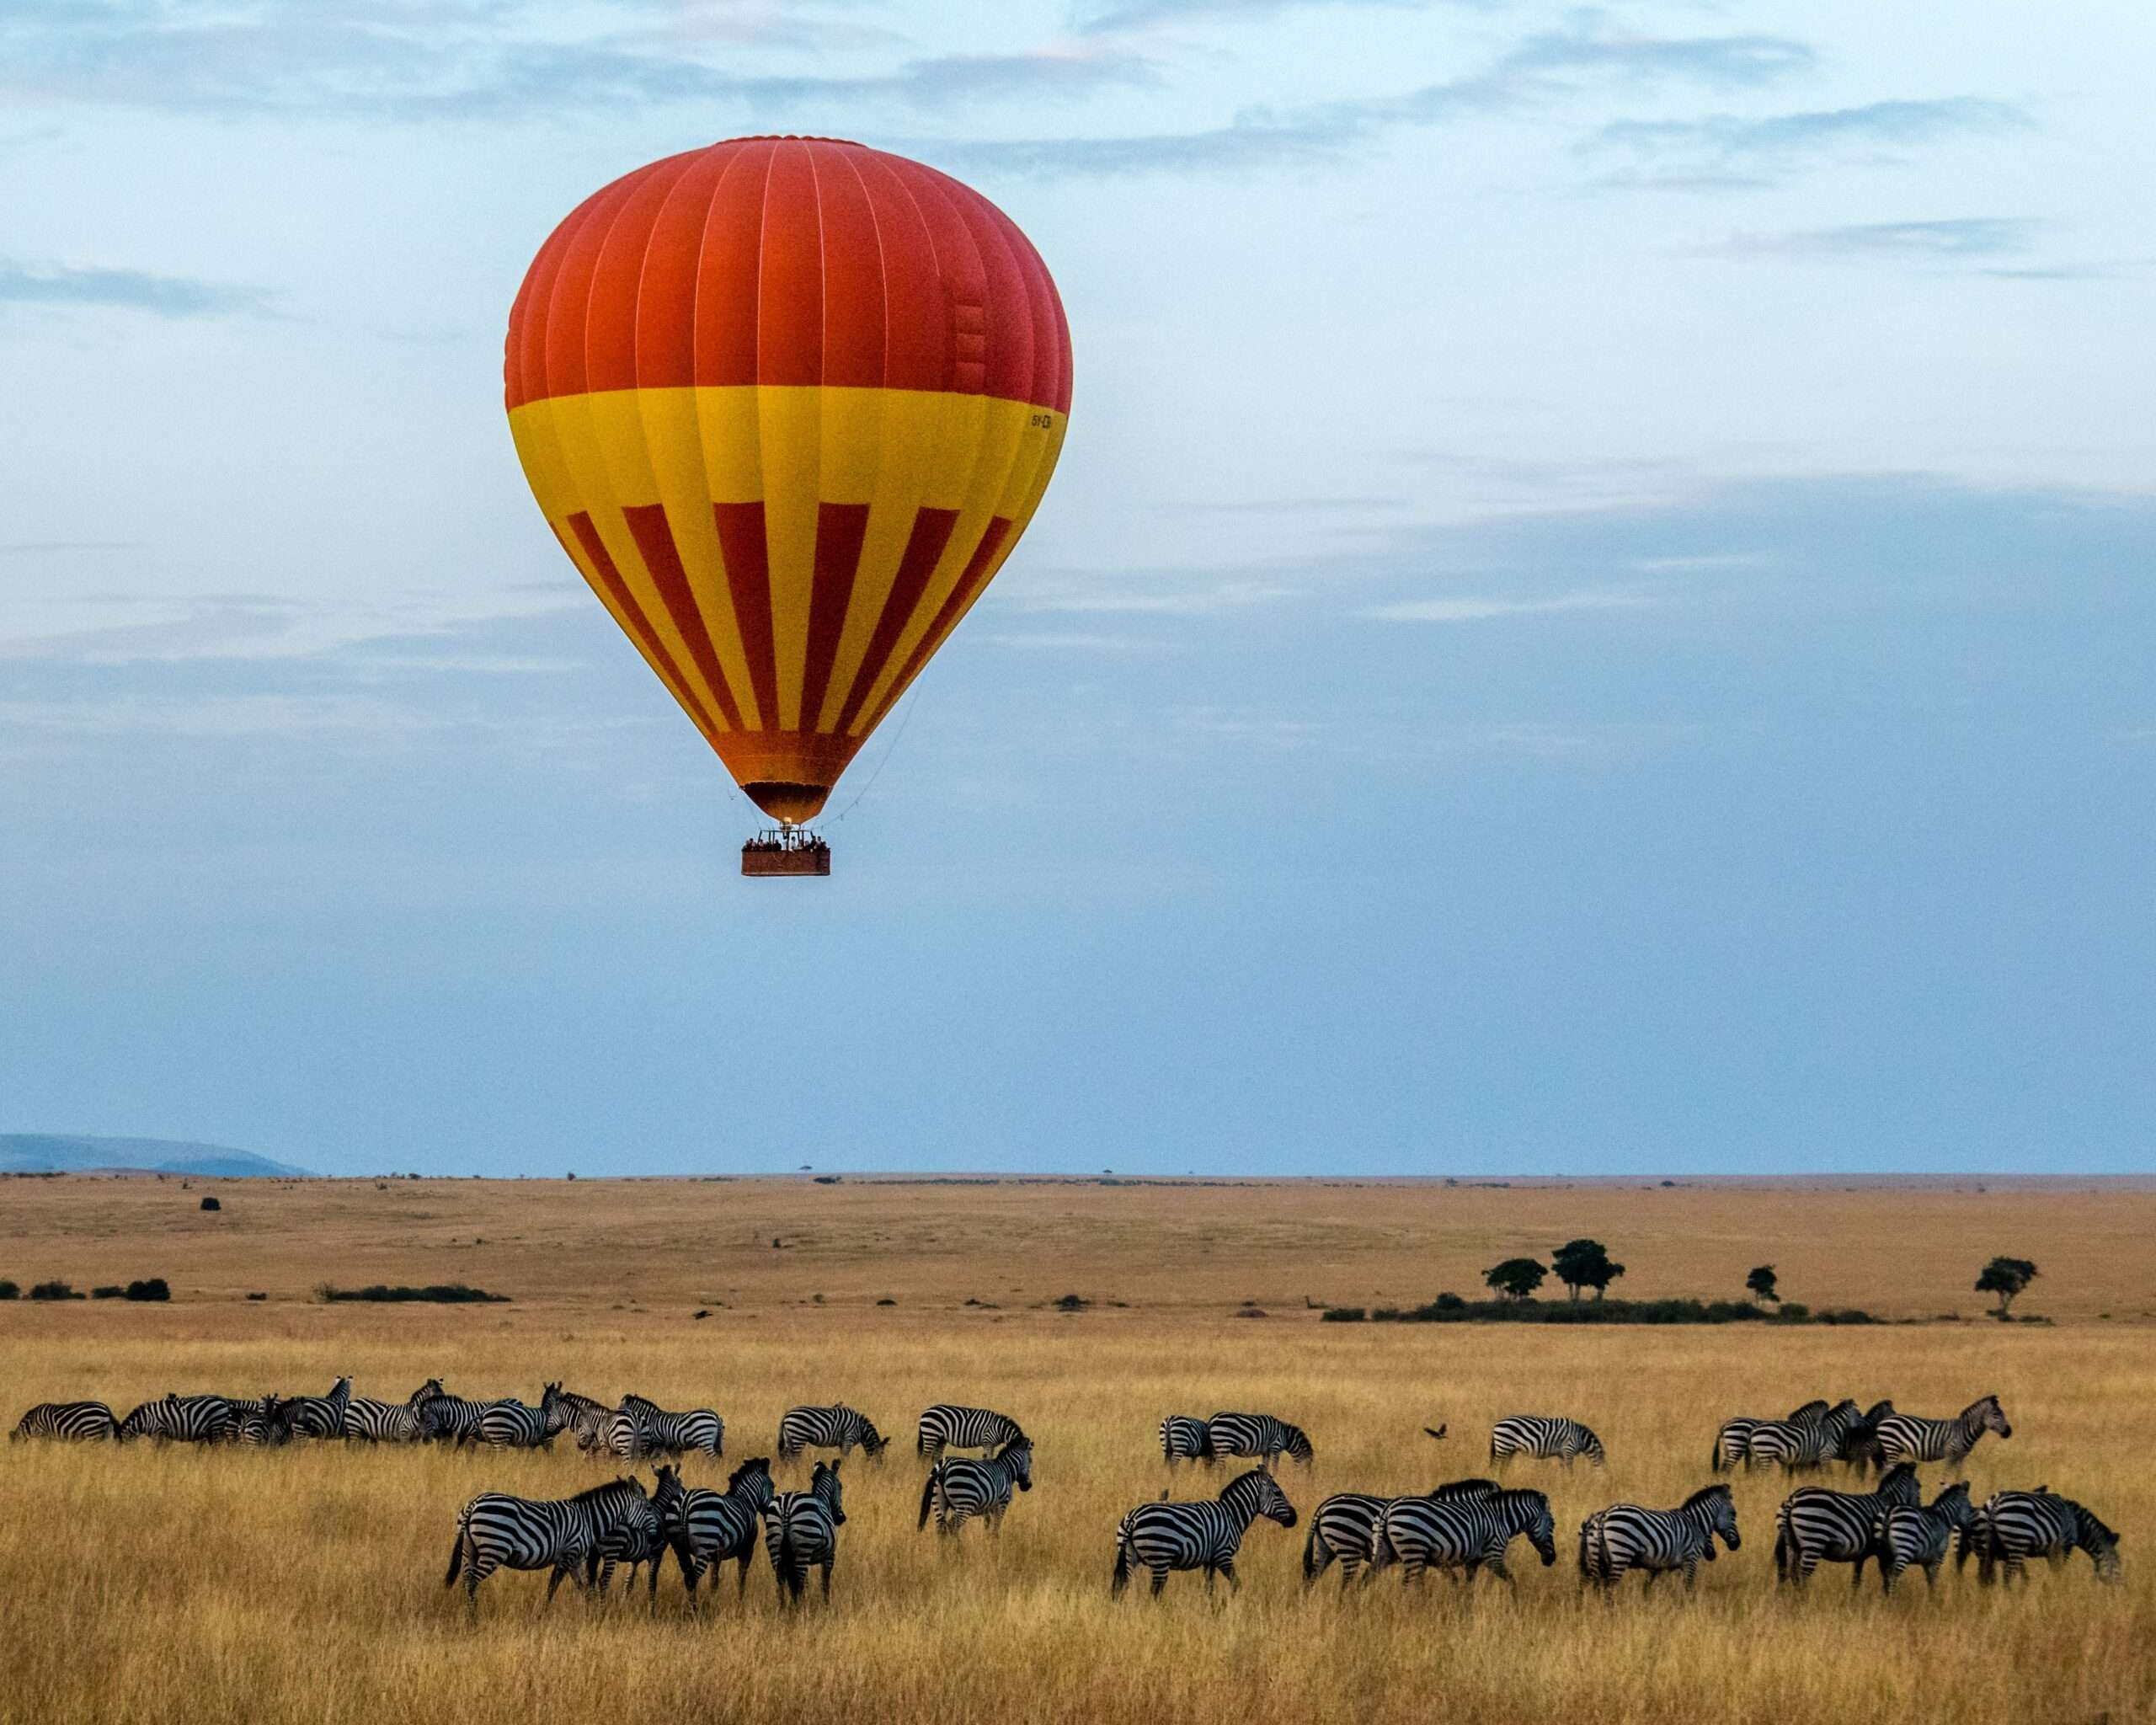 red and yellow hot air balloon over a herd of zebras in Africa